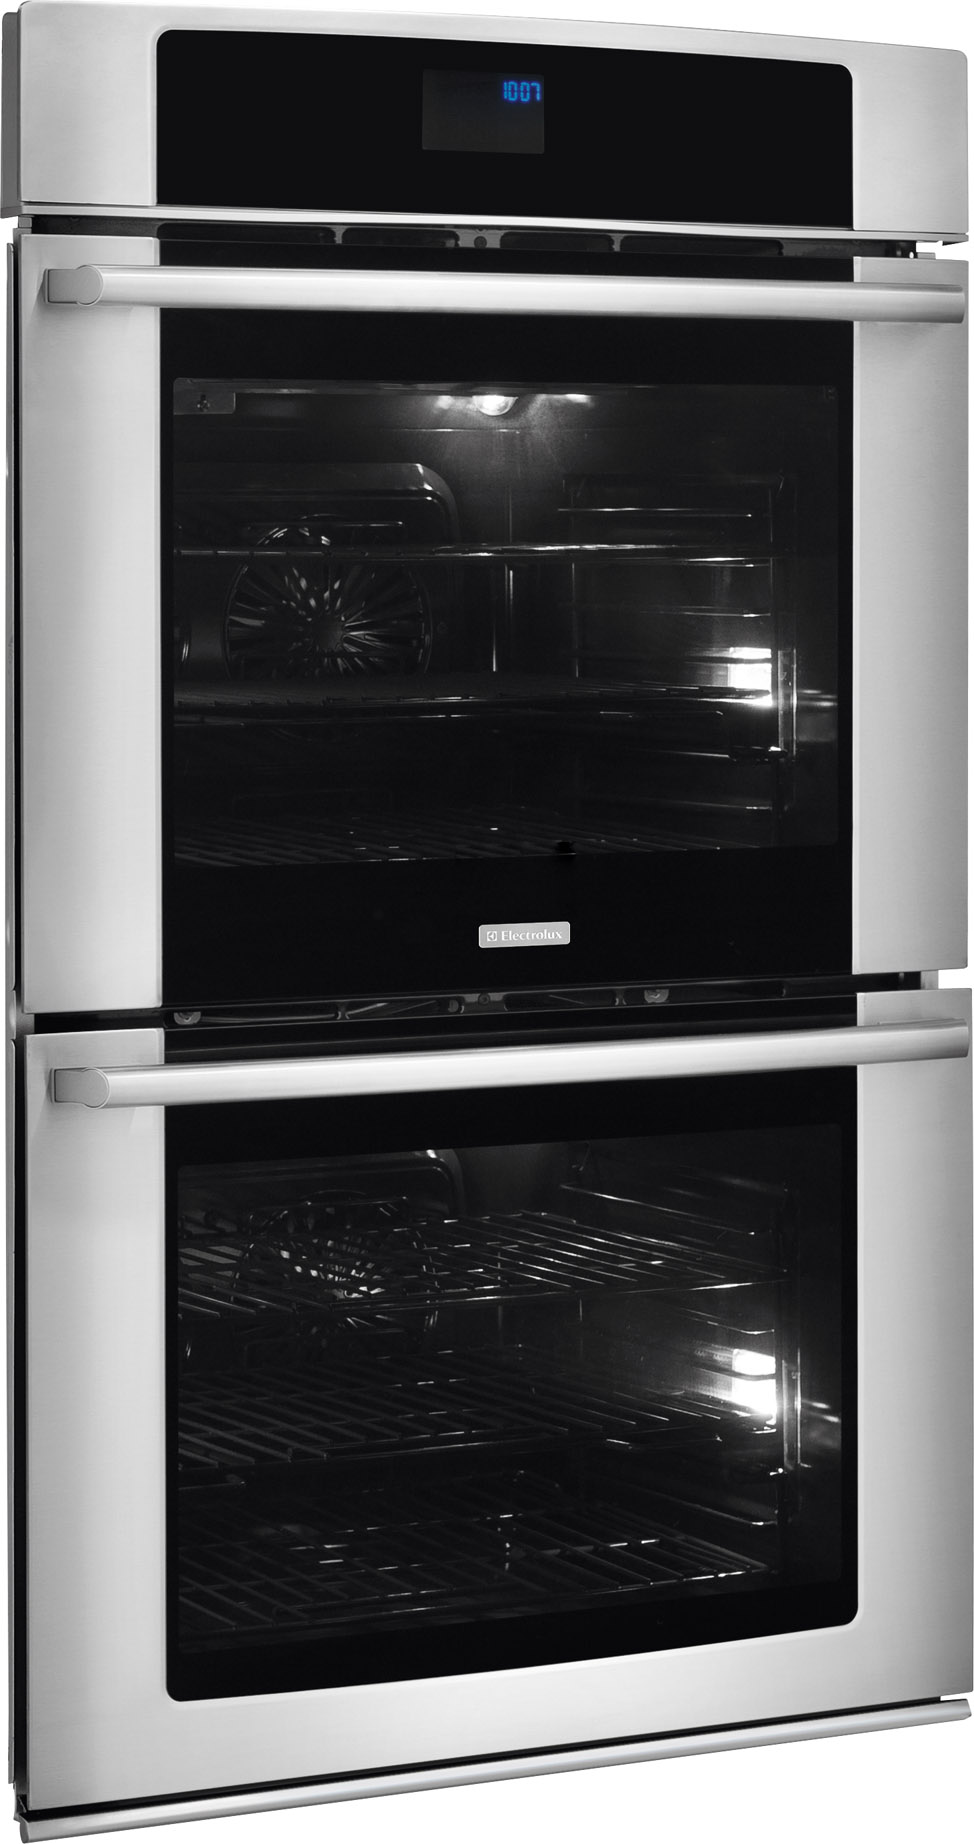 Electrolux 30 Built In Electric Double Oven Stainless Steel Ew30ew65ps